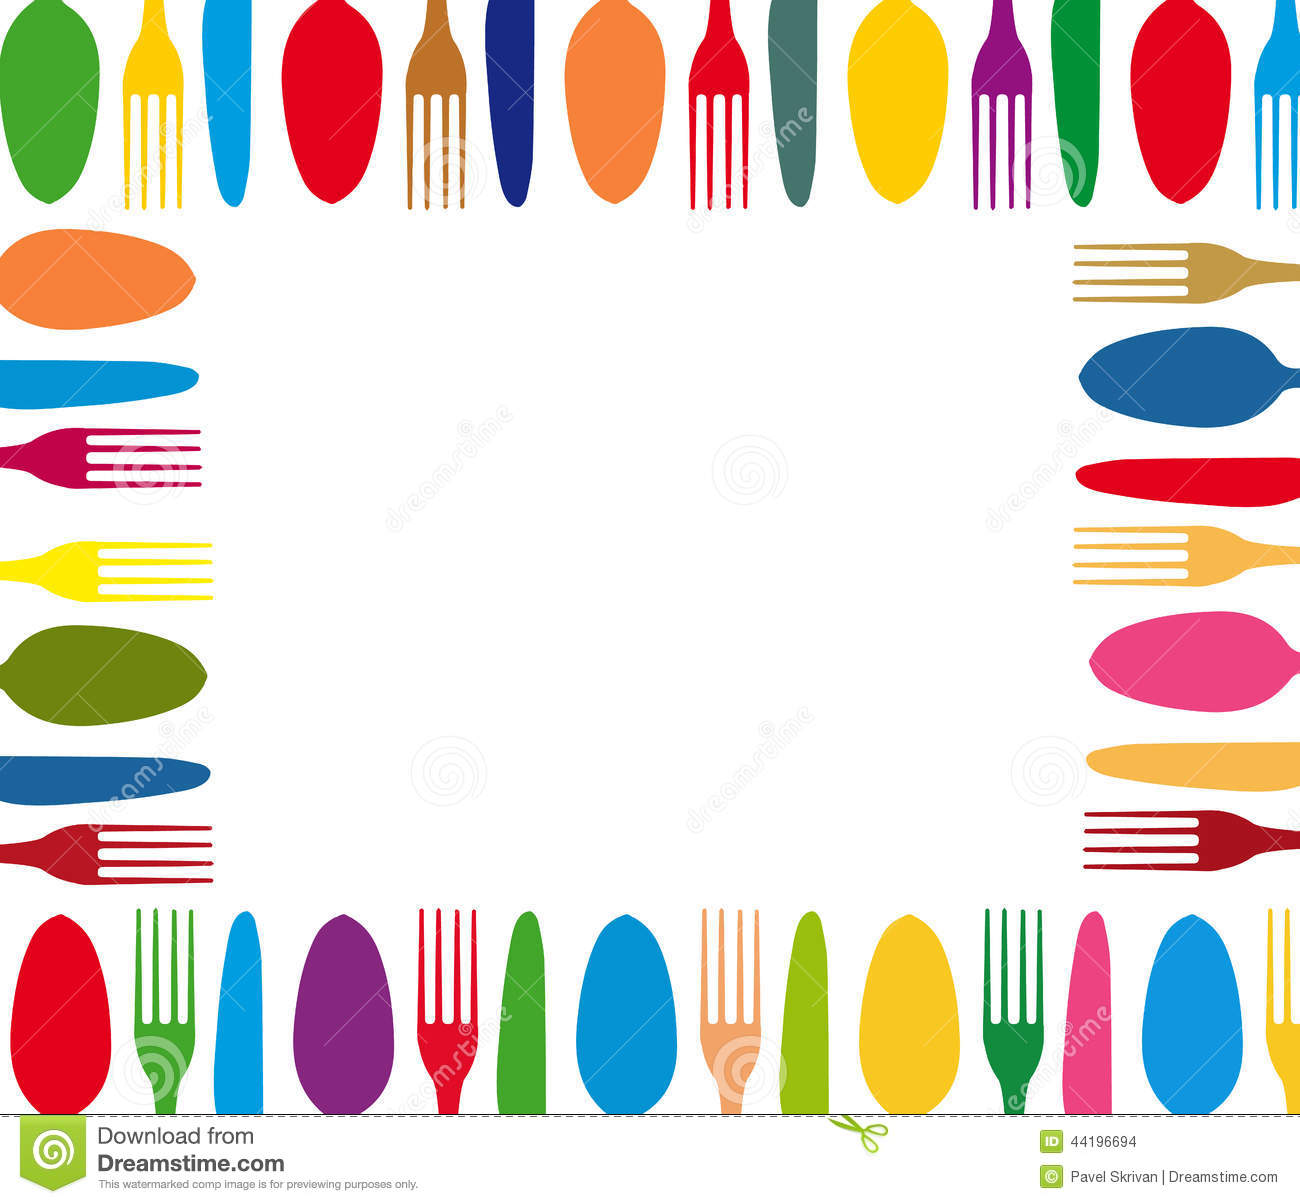 Cutlery Color Background Menu Stock Illustration Image  : cutlery color background menu illustration 44196694 from www.dreamstime.com size 1300 x 1204 jpeg 126kB